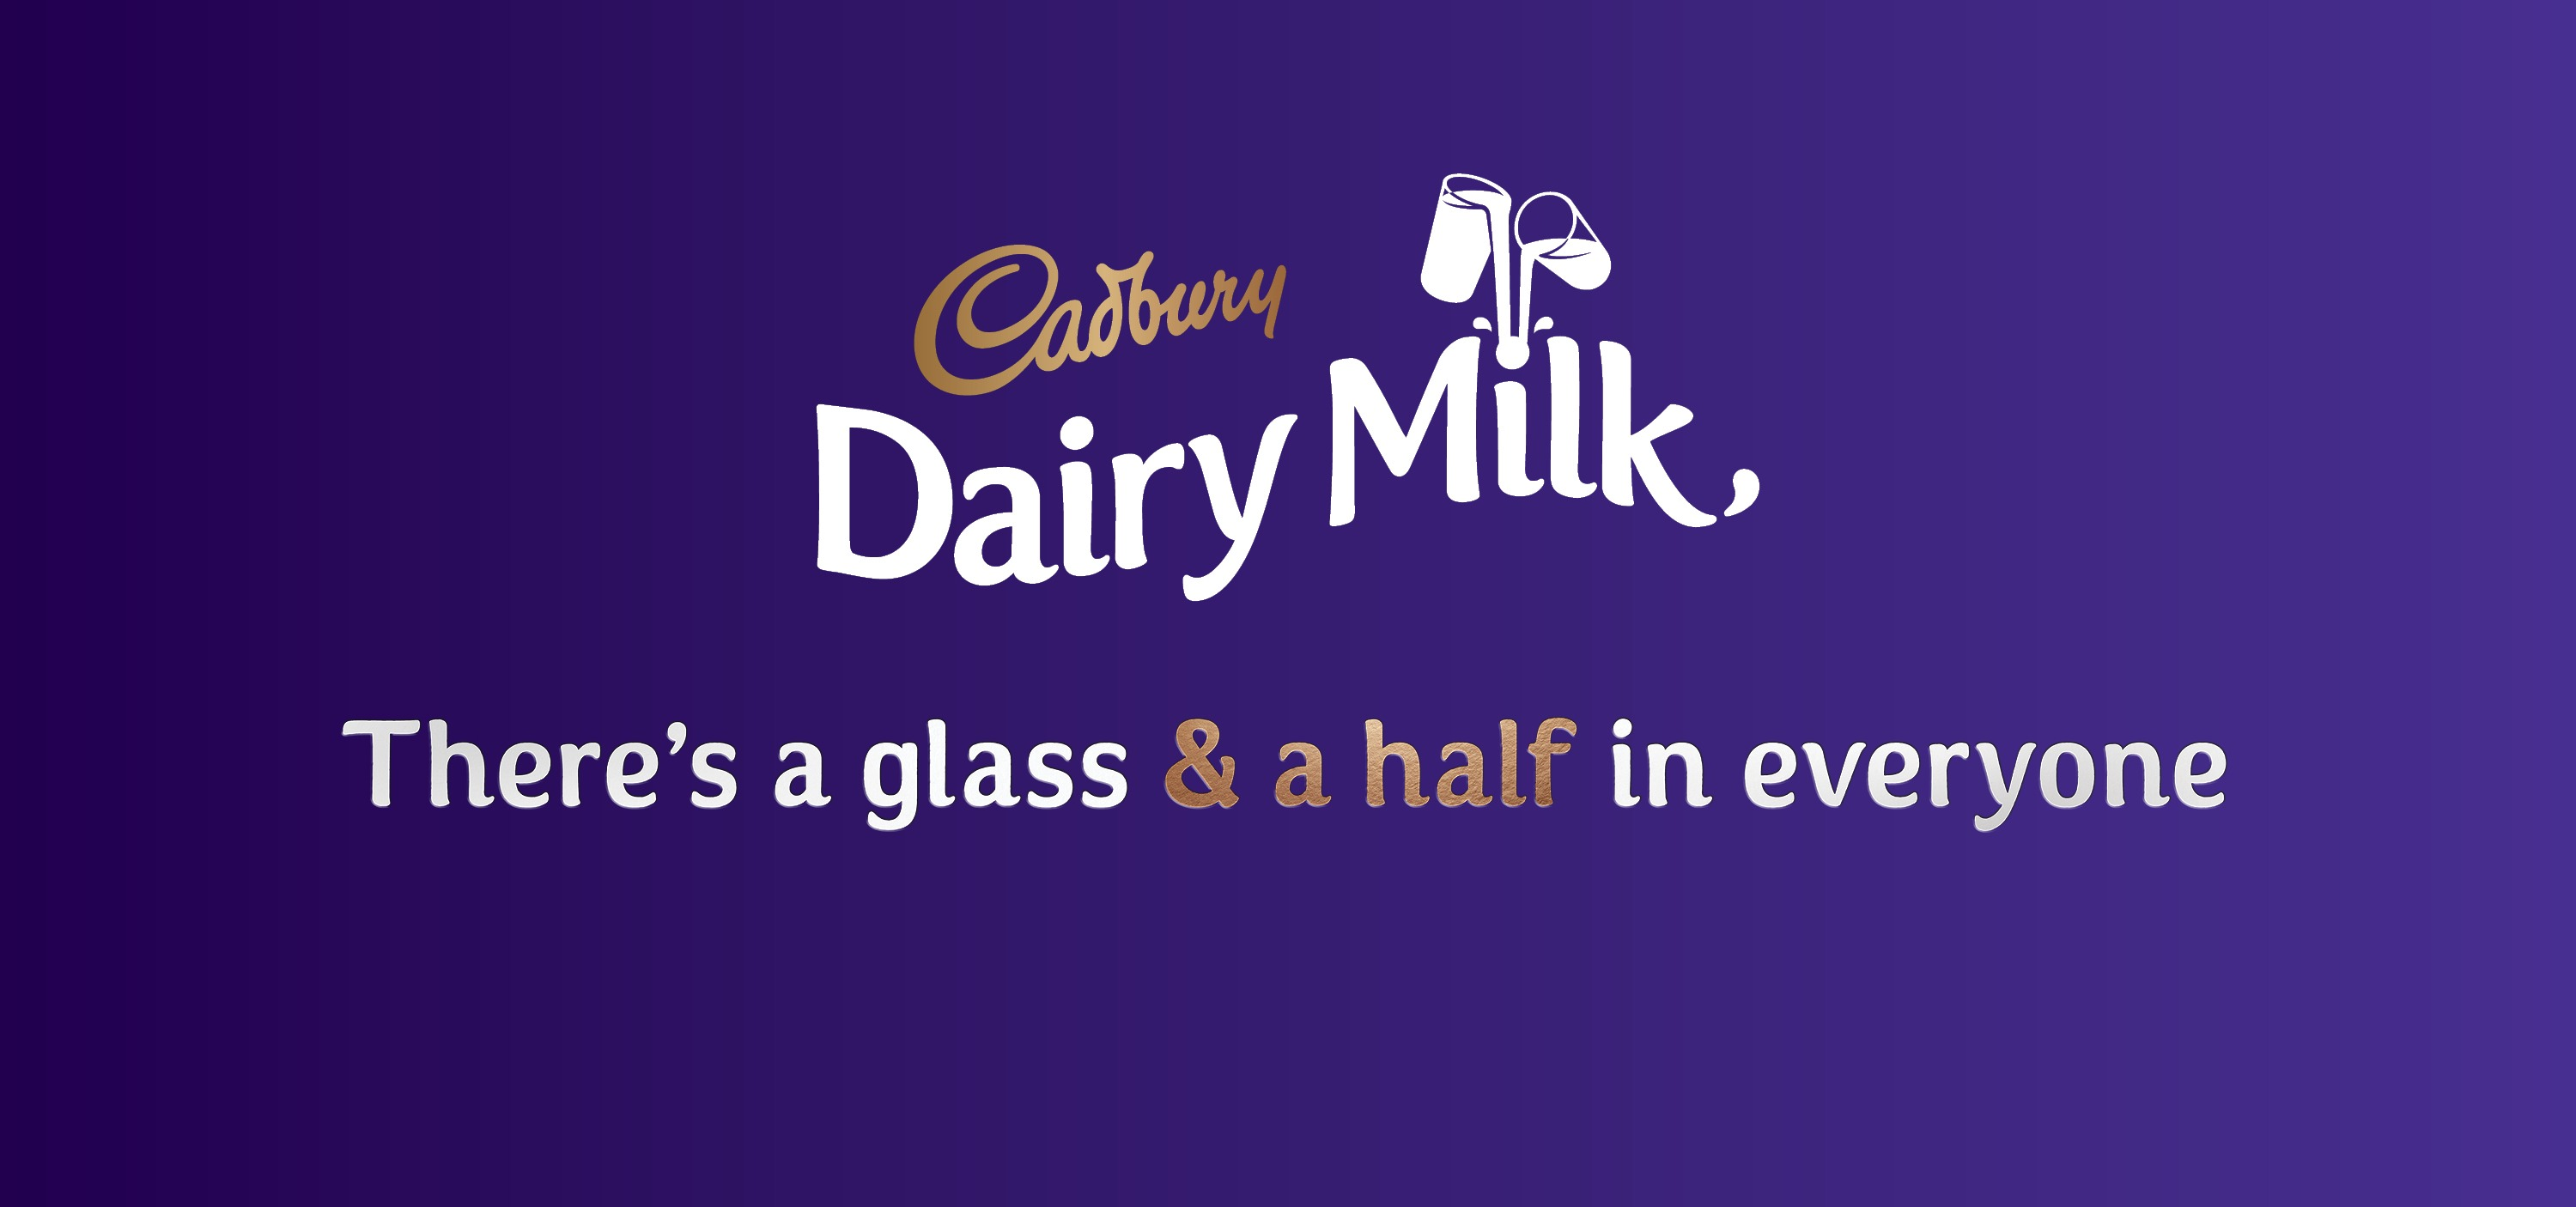 Unlock the Joy with Cadbury